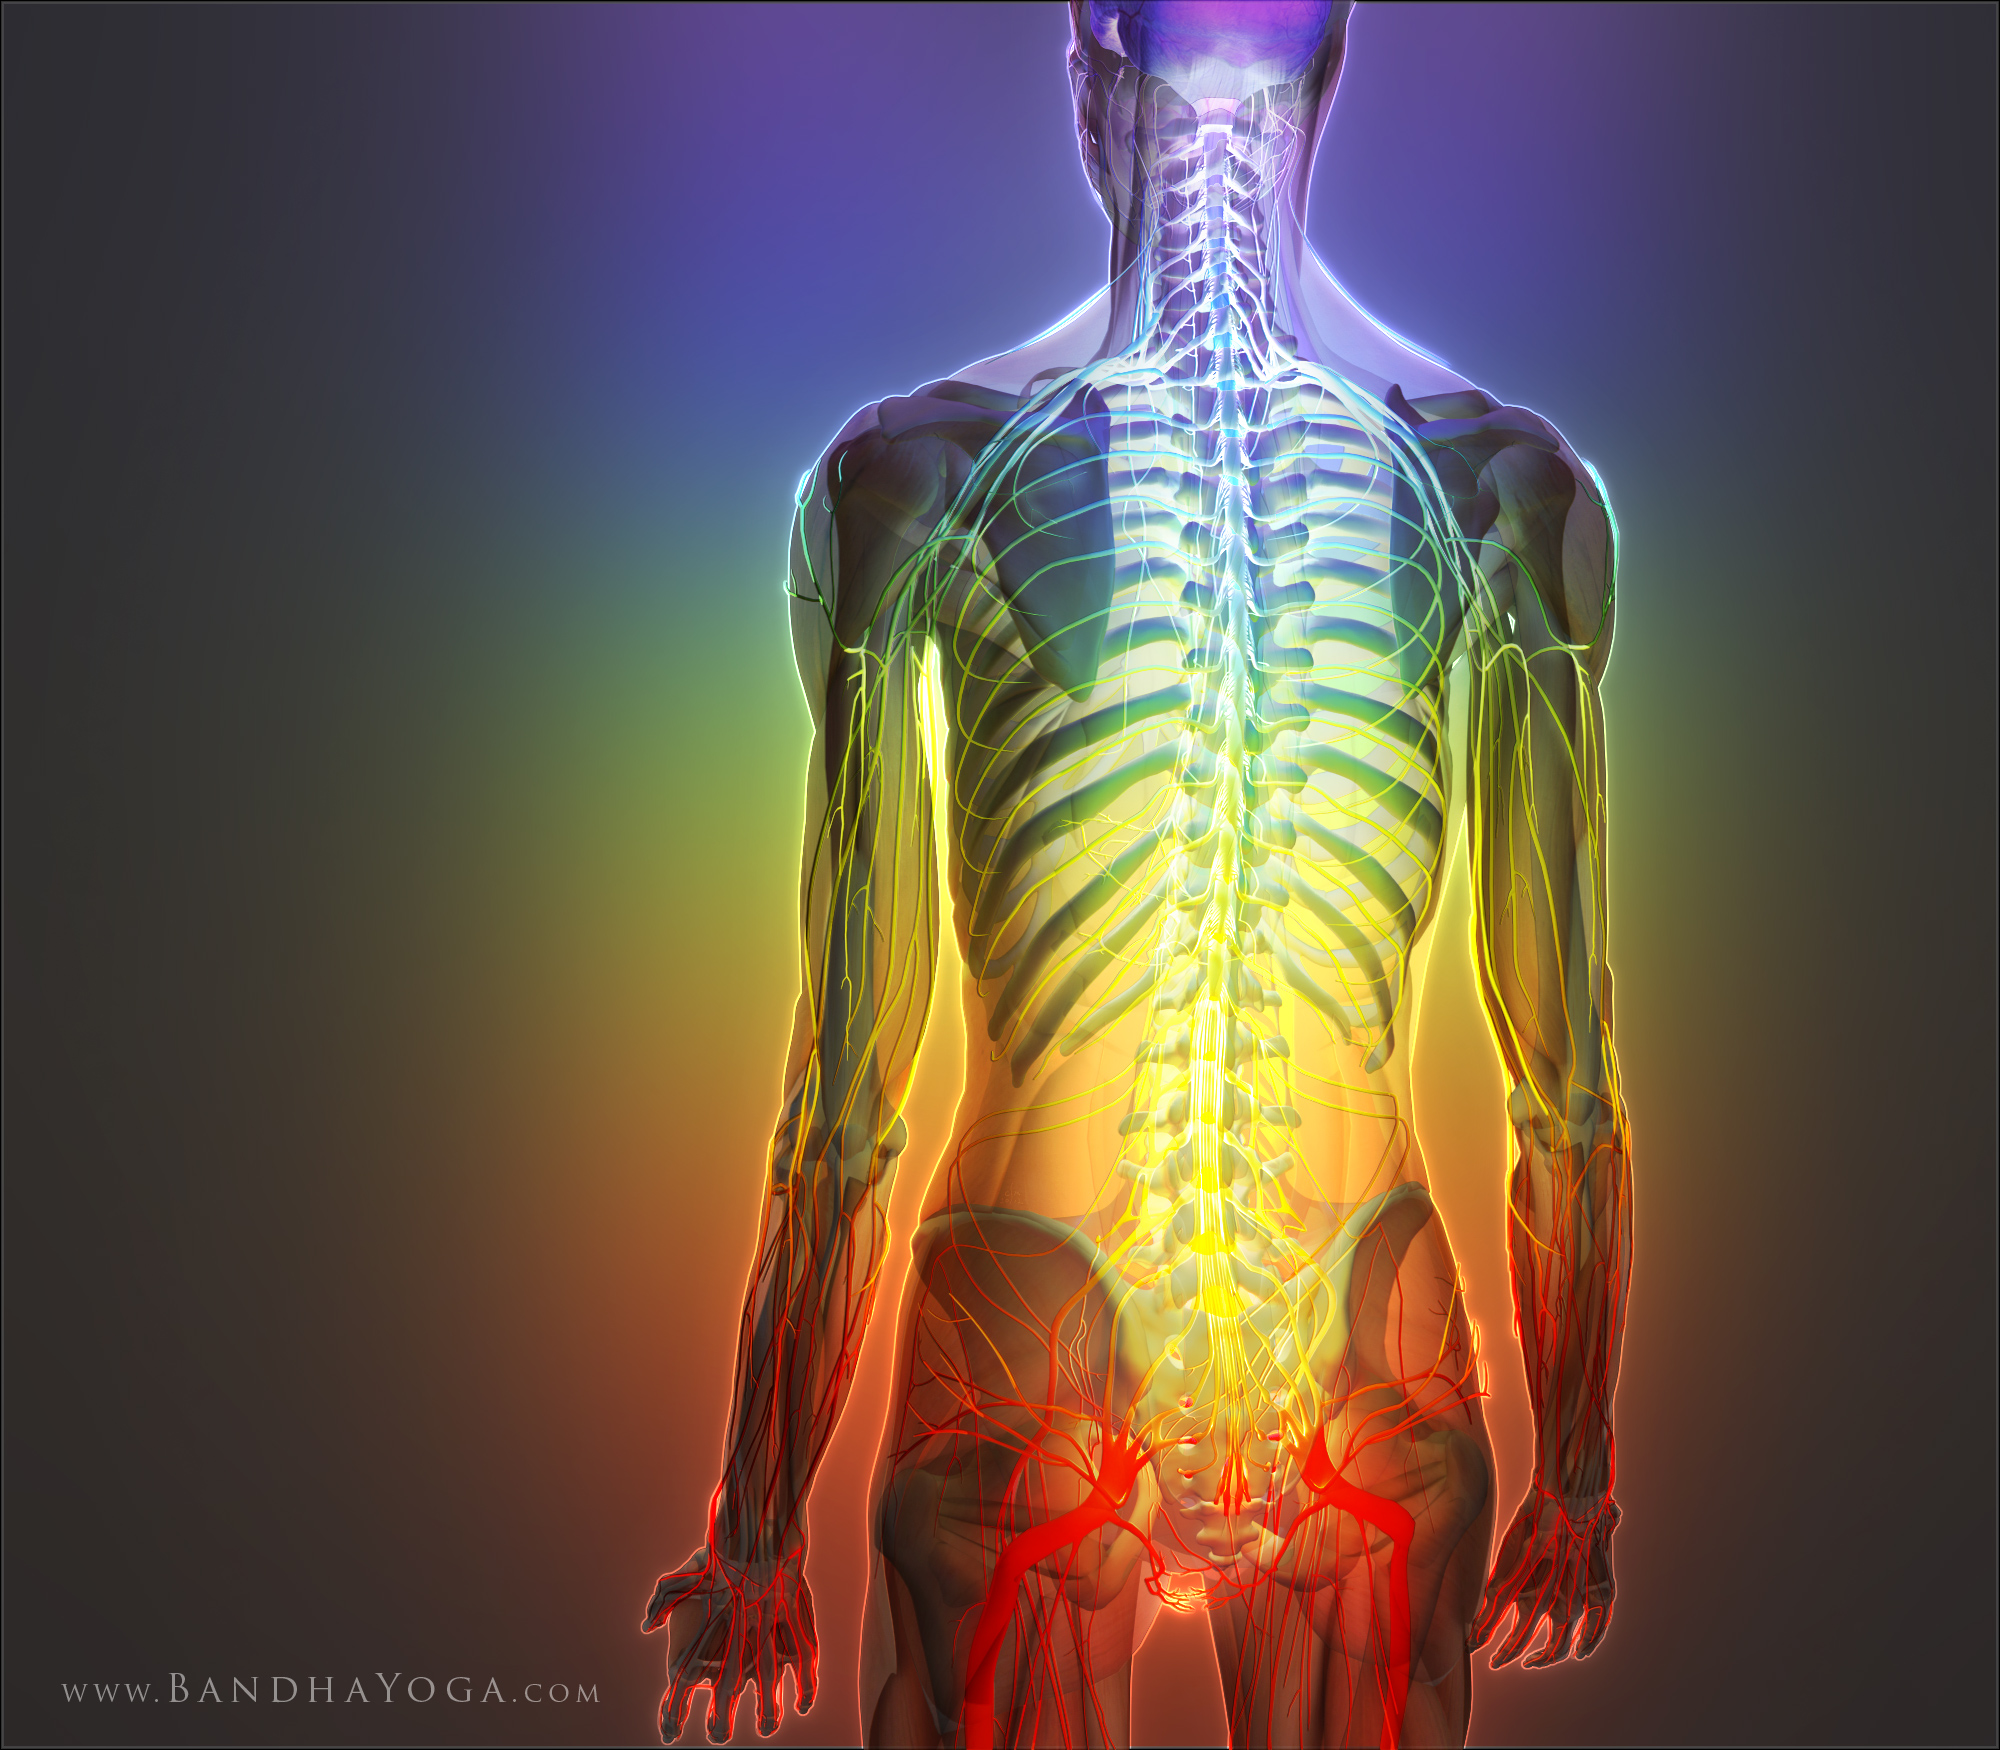 The Daily Bandha: Degenerative Disc Disease, The Sushumna